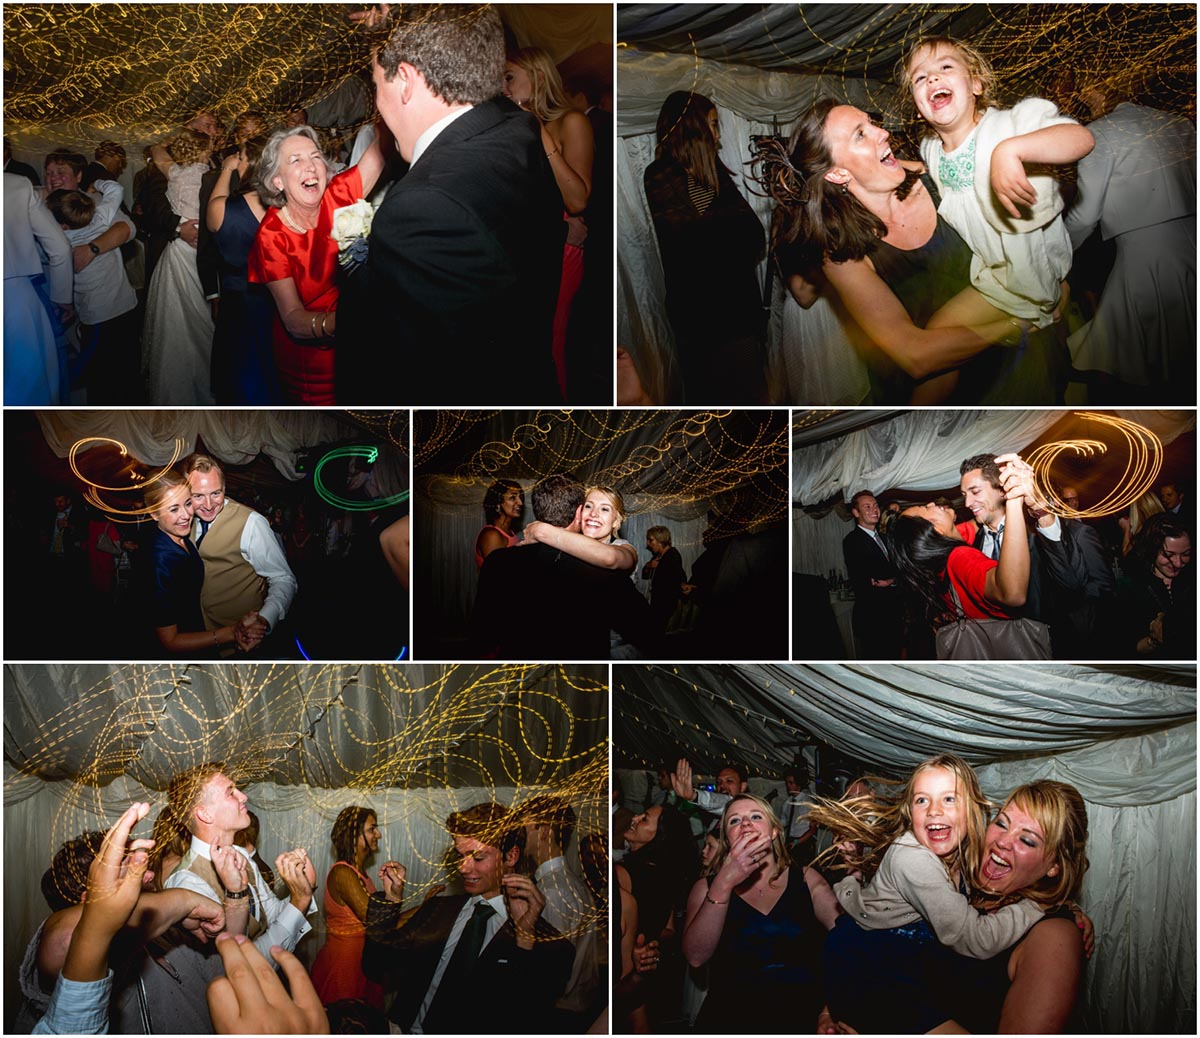 Susie and Ed's Dorset Wedding in Alton Pancras, Dorset, near Cerne Abbas, By Lisa Carpenter Photography, West Midlands, Birmingham based photographer, party, reception